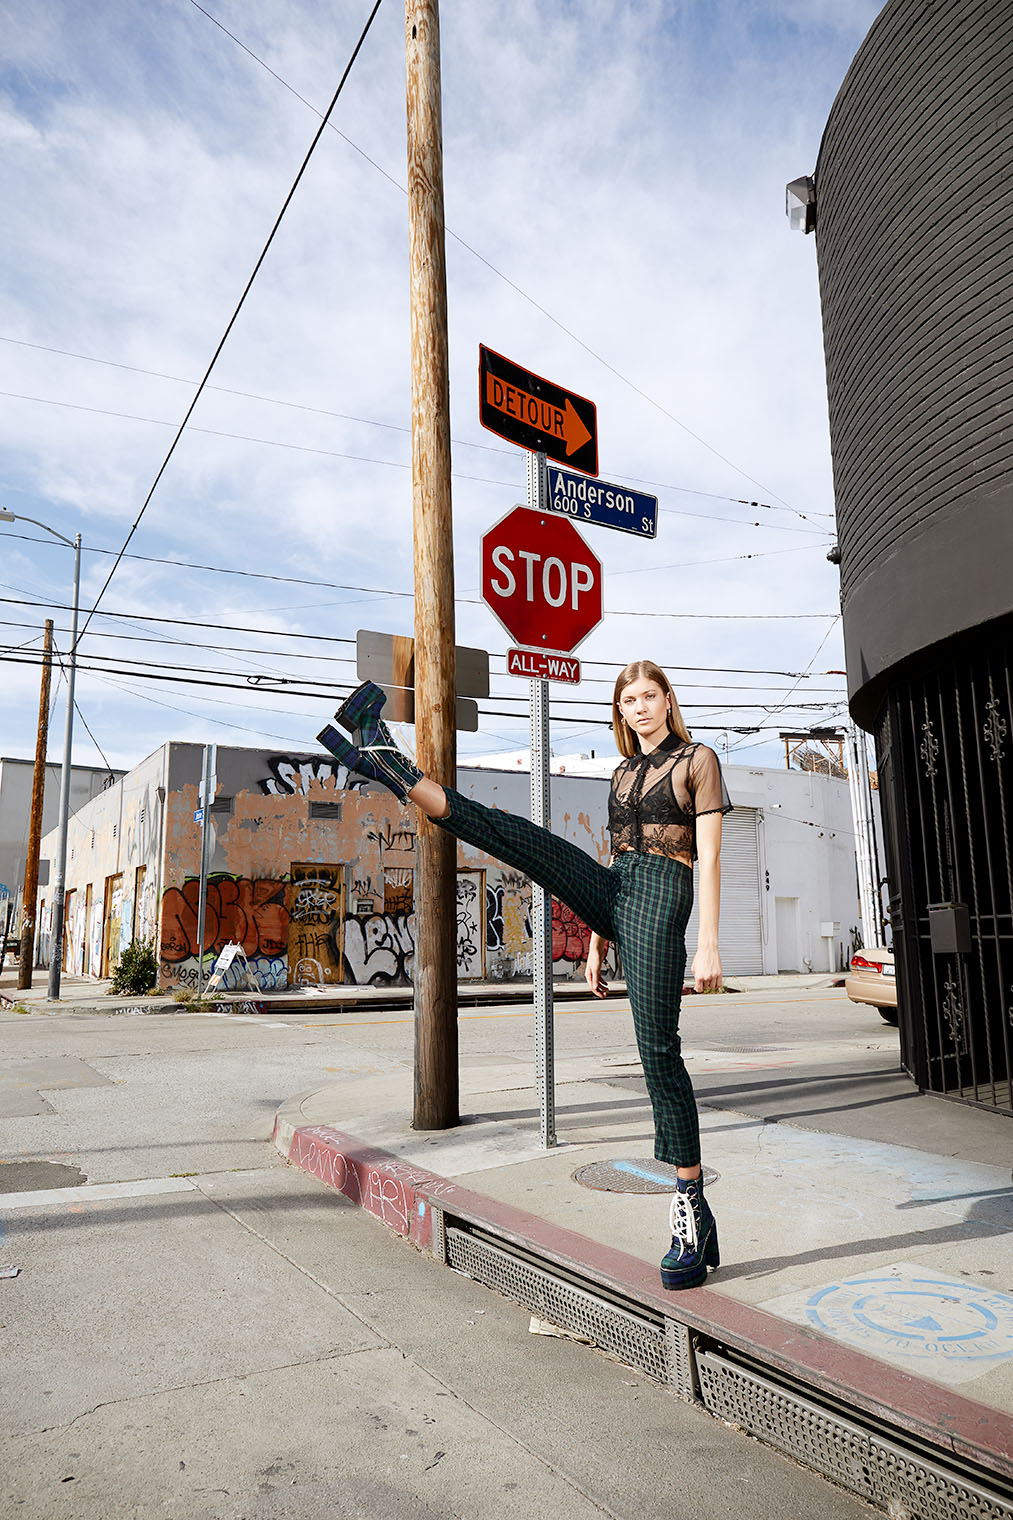 girl goose stepping in fashion outfit off street corner in downtown Los Angeles industrial district